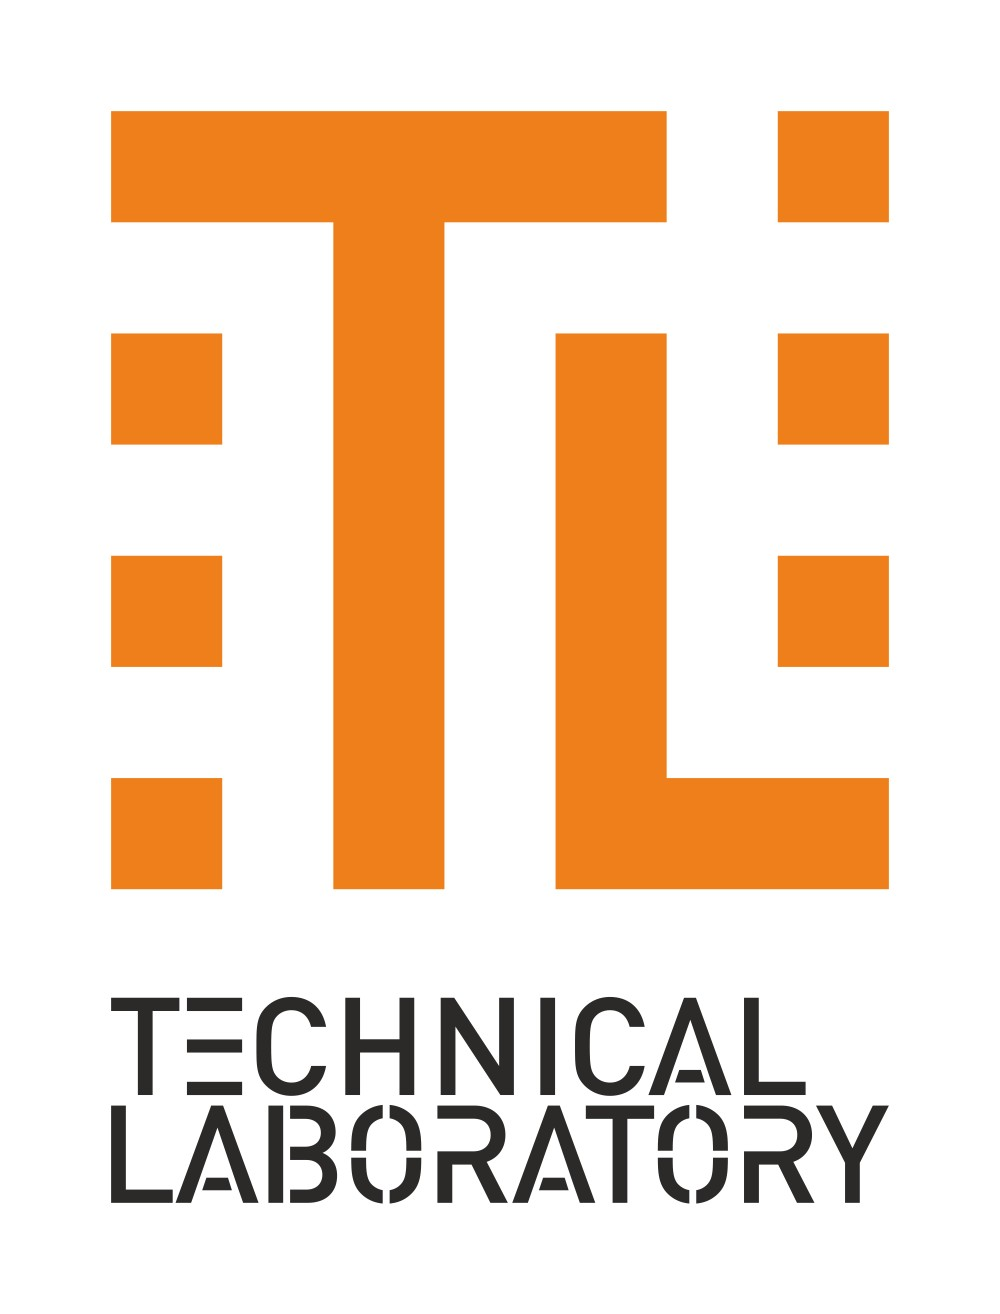 Компания технического обеспечения культурно-массовых мероприятий «Technical Laboratory»